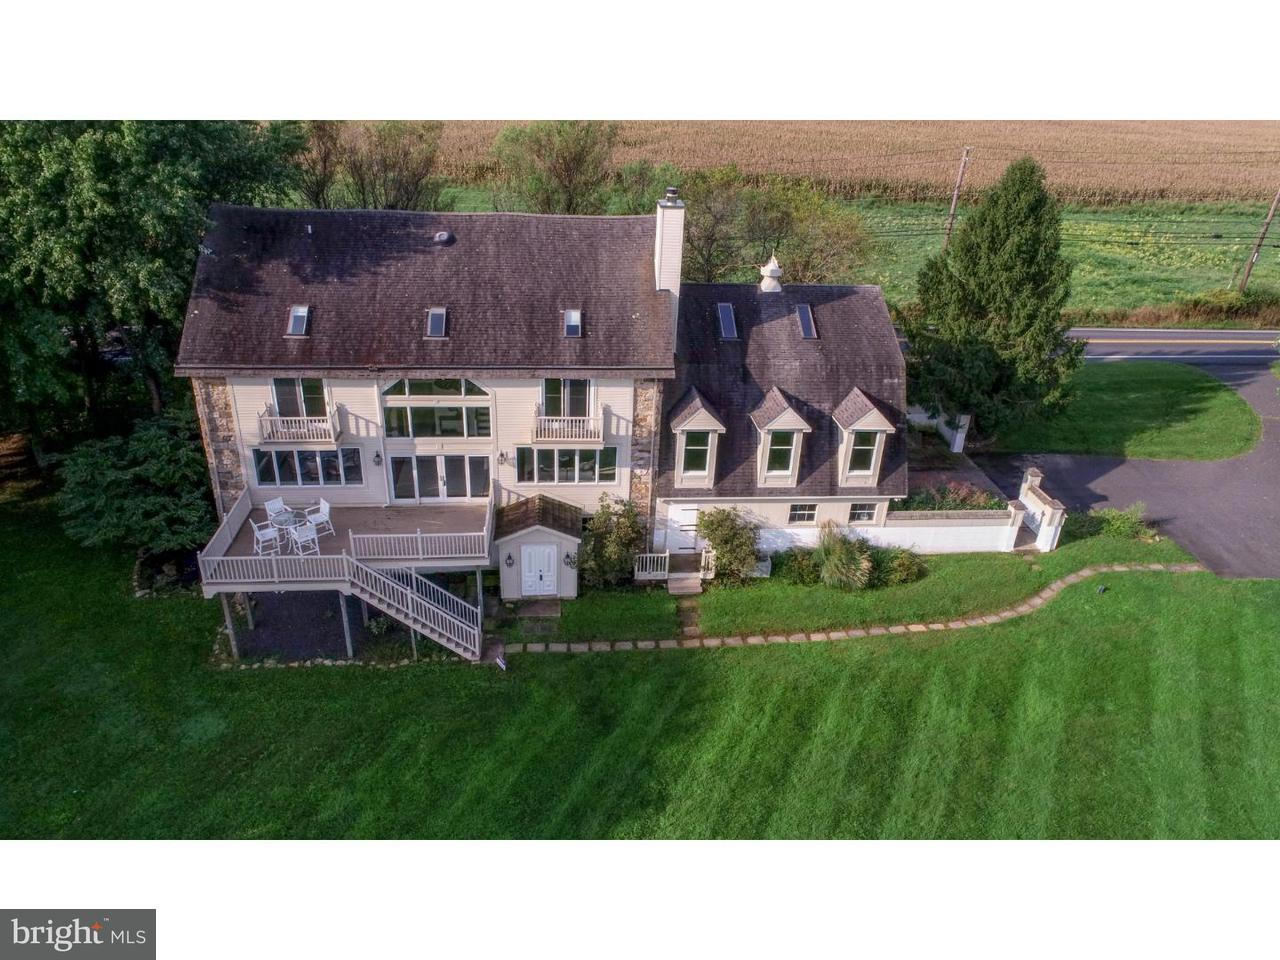 Single Family Home for Sale at 6279 ROUTE 412 Riegelsville, Pennsylvania 18077 United States